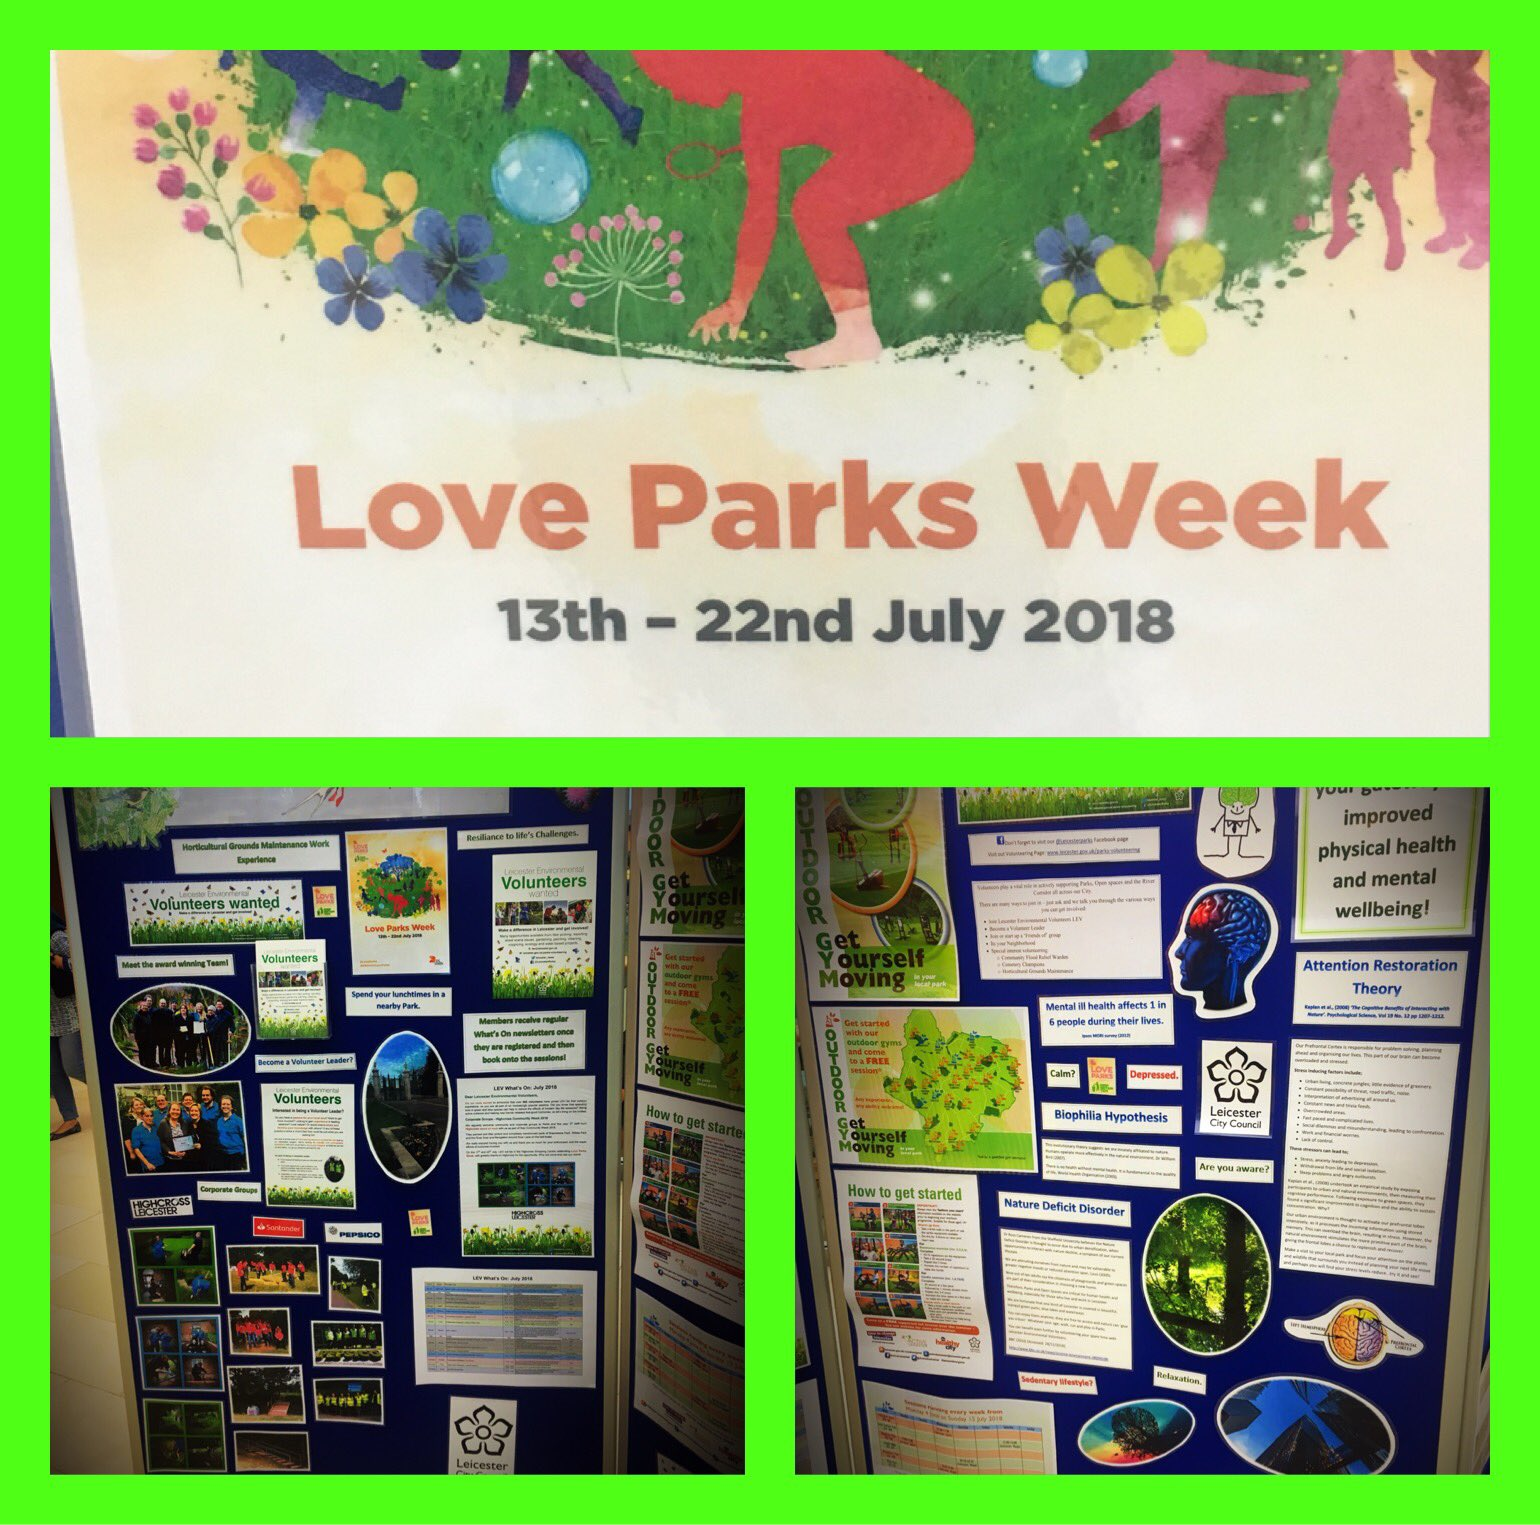 A huge thank you to @Leicester_News #Parks #Team for visiting us @Highcross for #NationalLoveParks week to raise awareness of #Leicester #Environmental #Volunteers and events that are taking place across #Leicester Parks this summer! https://t.co/94B1MBHhDf